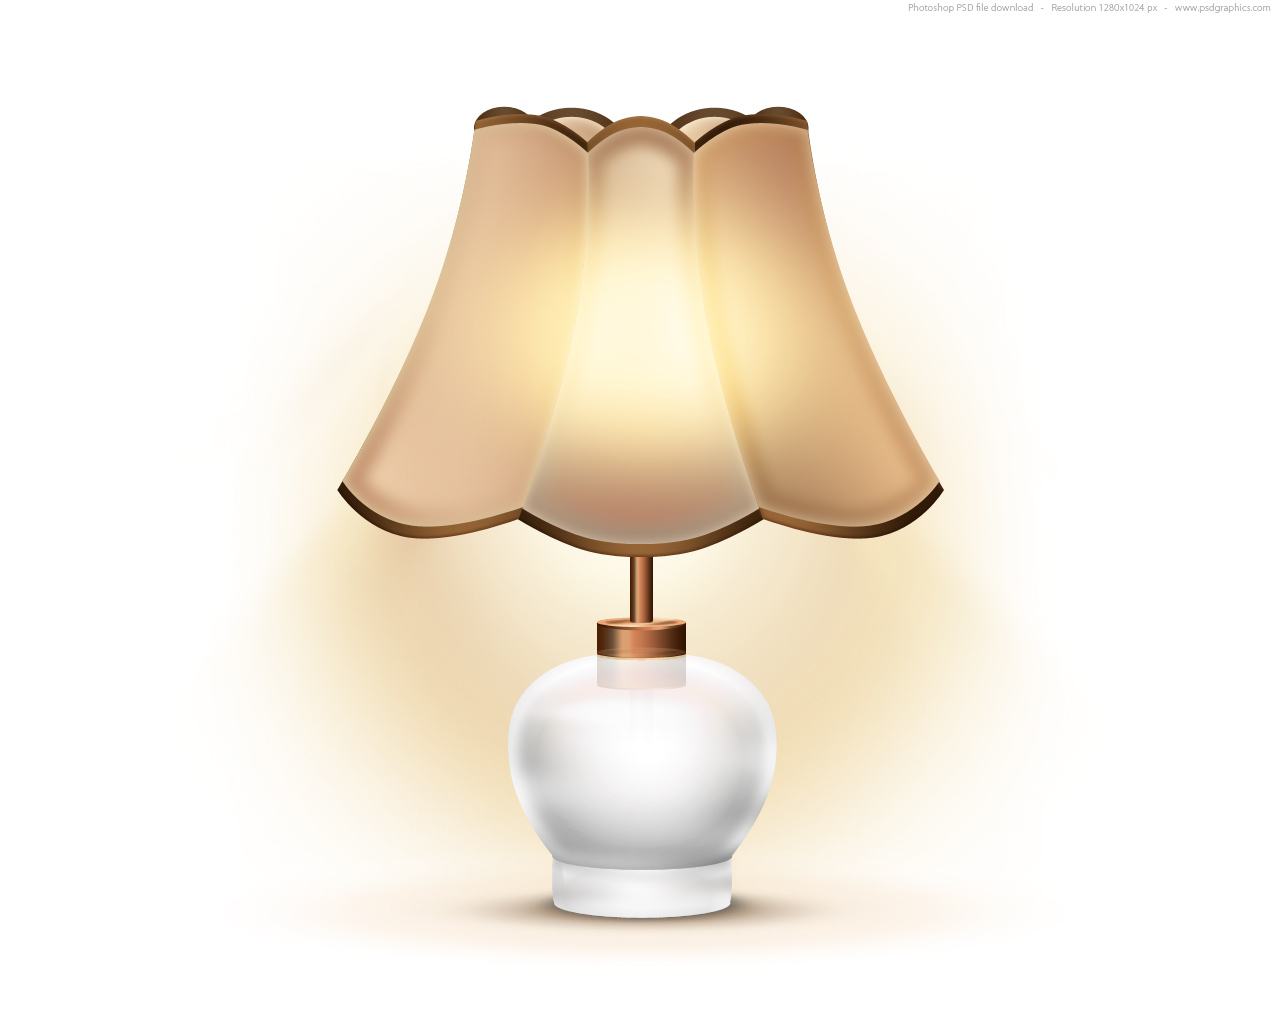 Baby Table Lamps Cute Babies Wallpaper 3840x2160 55644